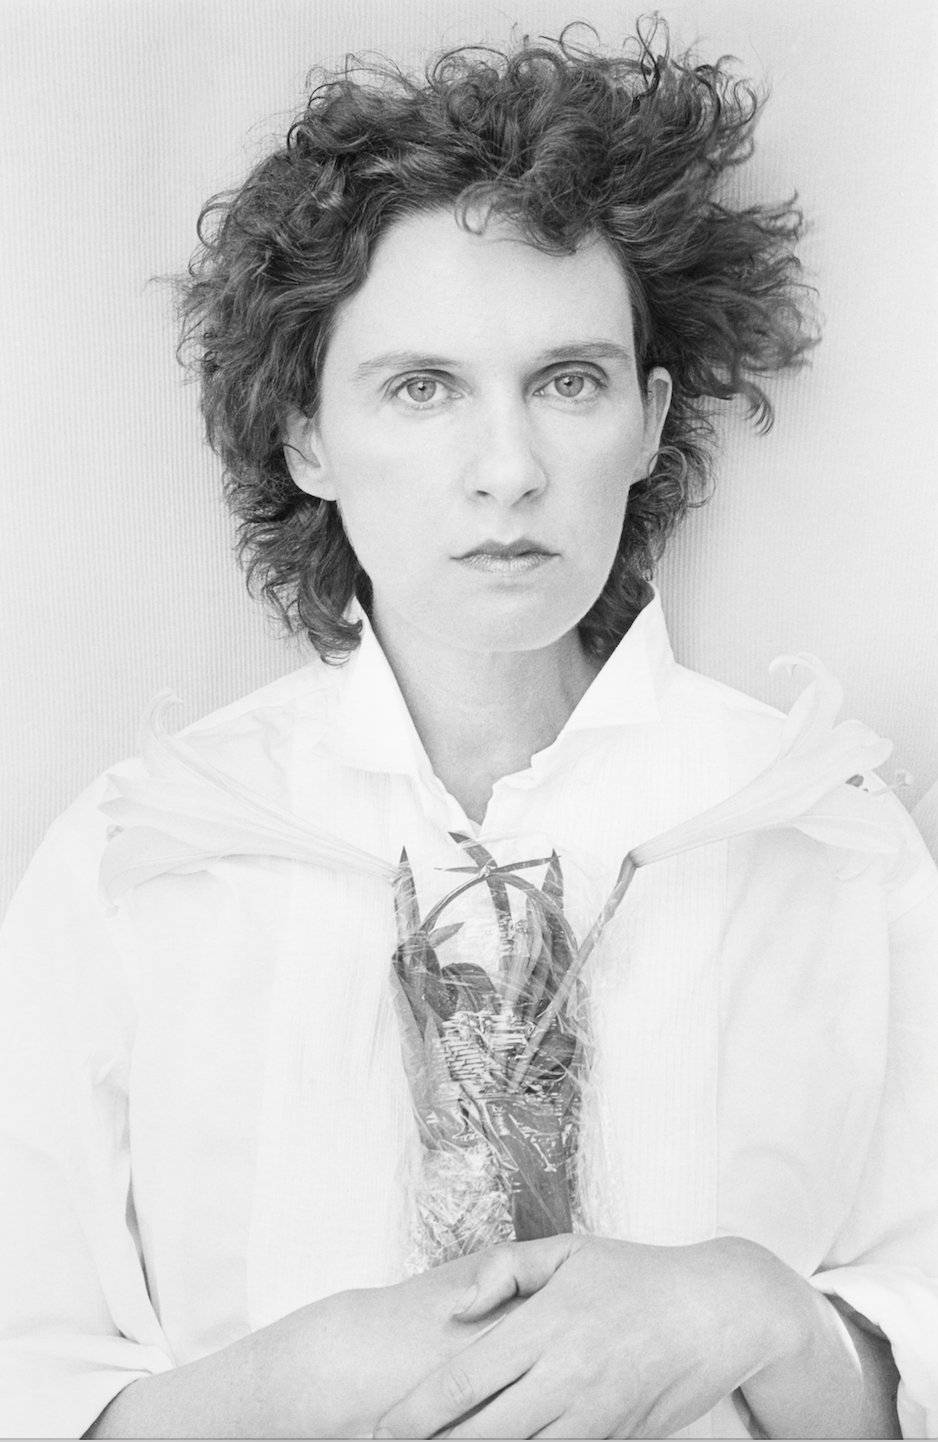 Self-portrait and Lily, 1973